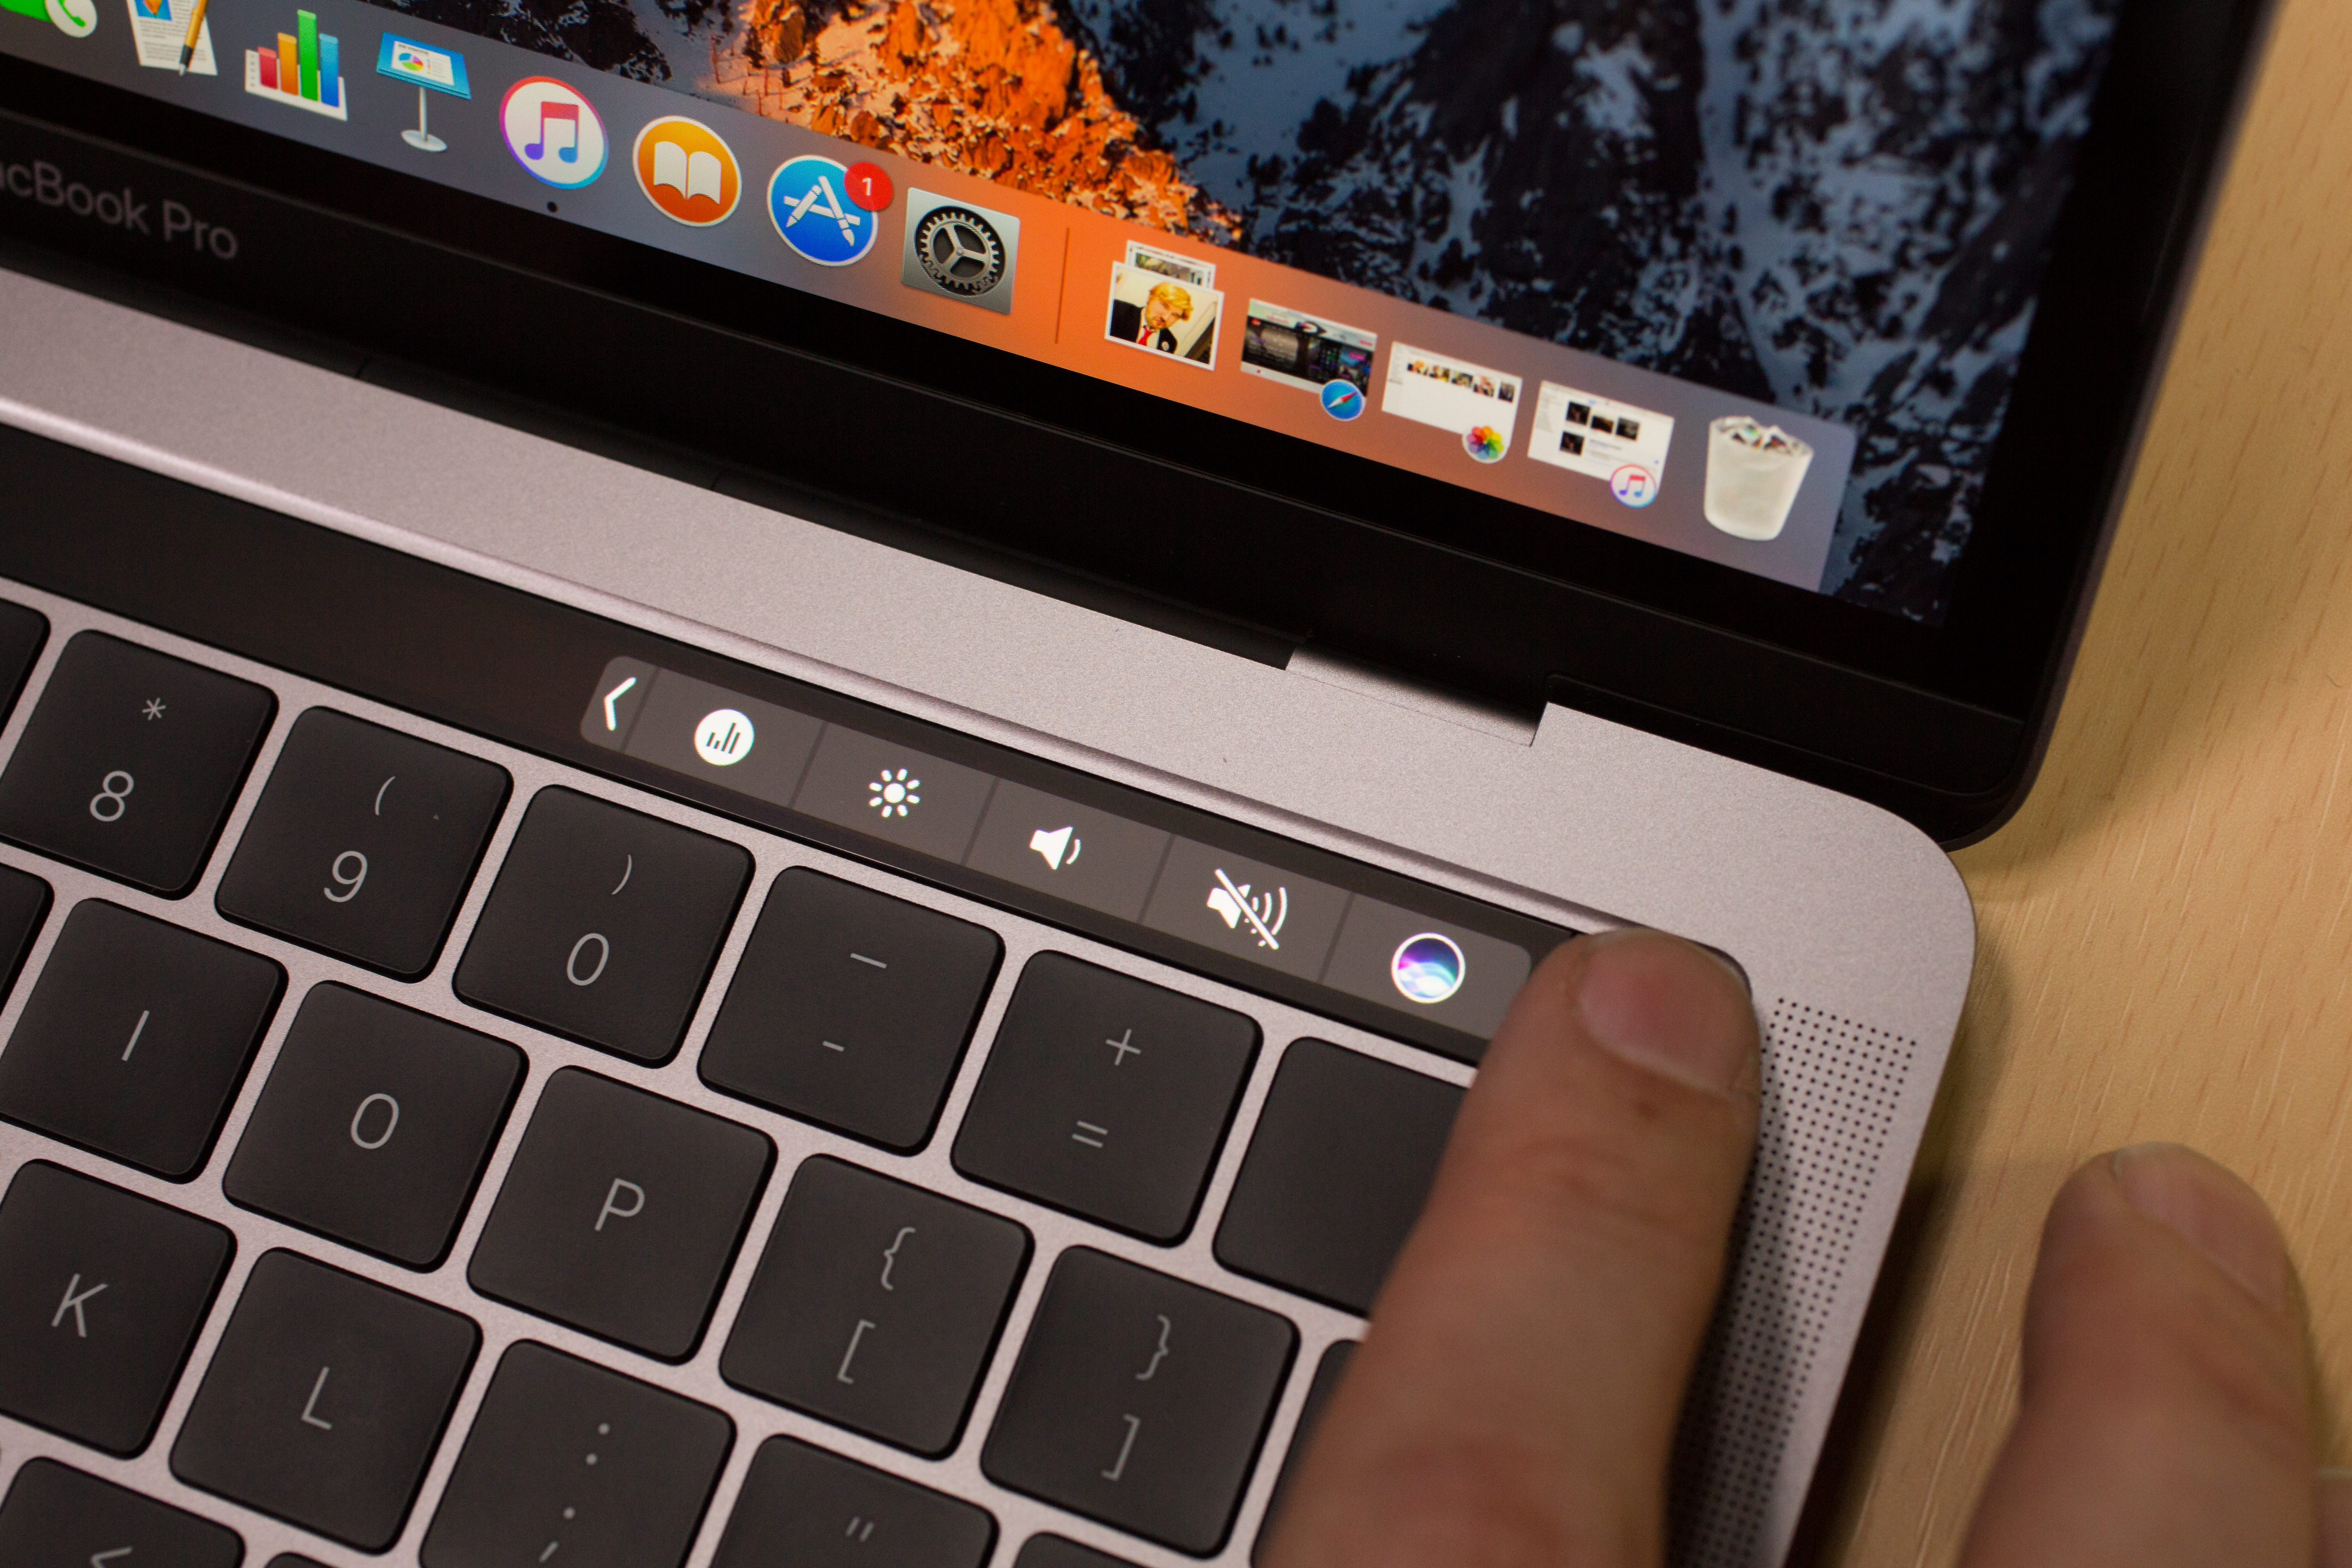 apple-macbook-pro-with-touch-bar-13-inch-2016-30.jpg